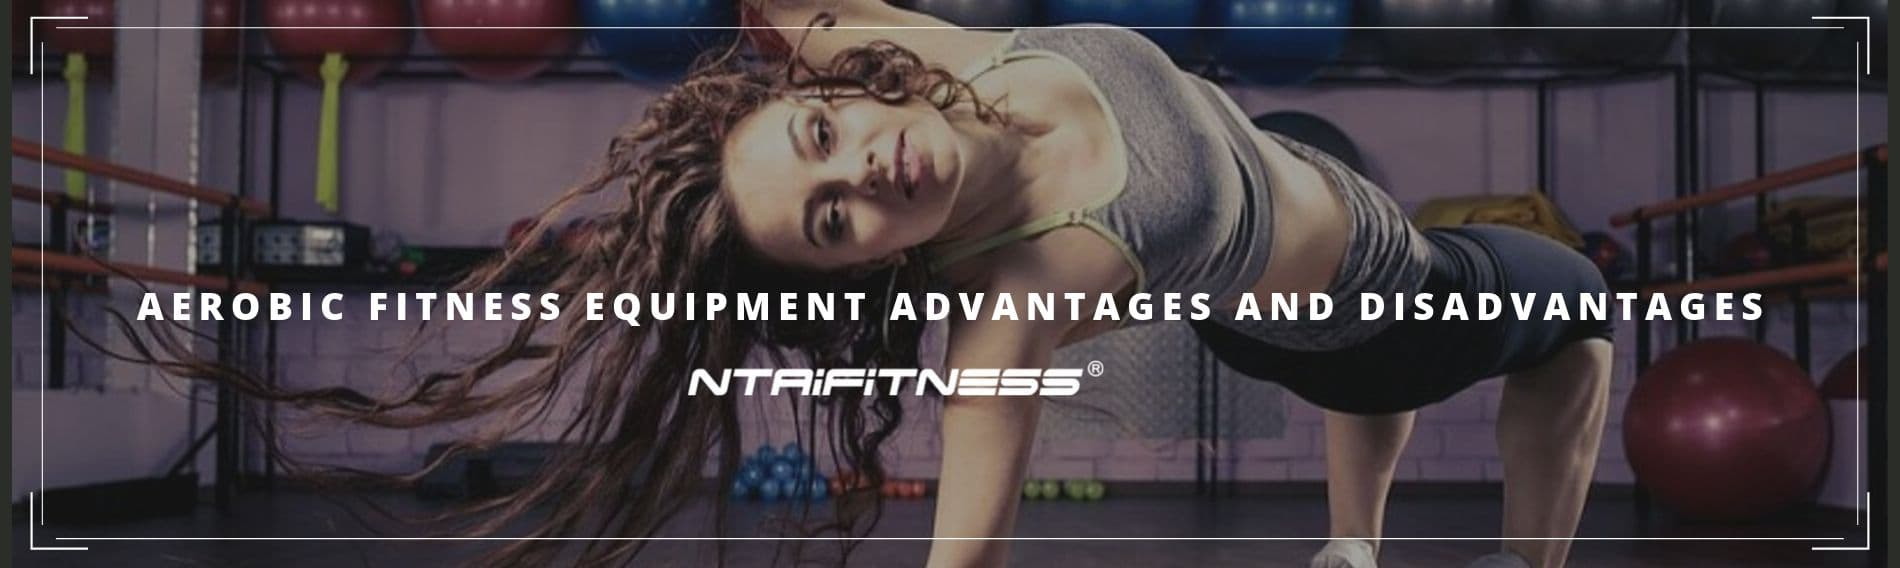 Aerobic Fitness Equipment Advantages And Disadvantages